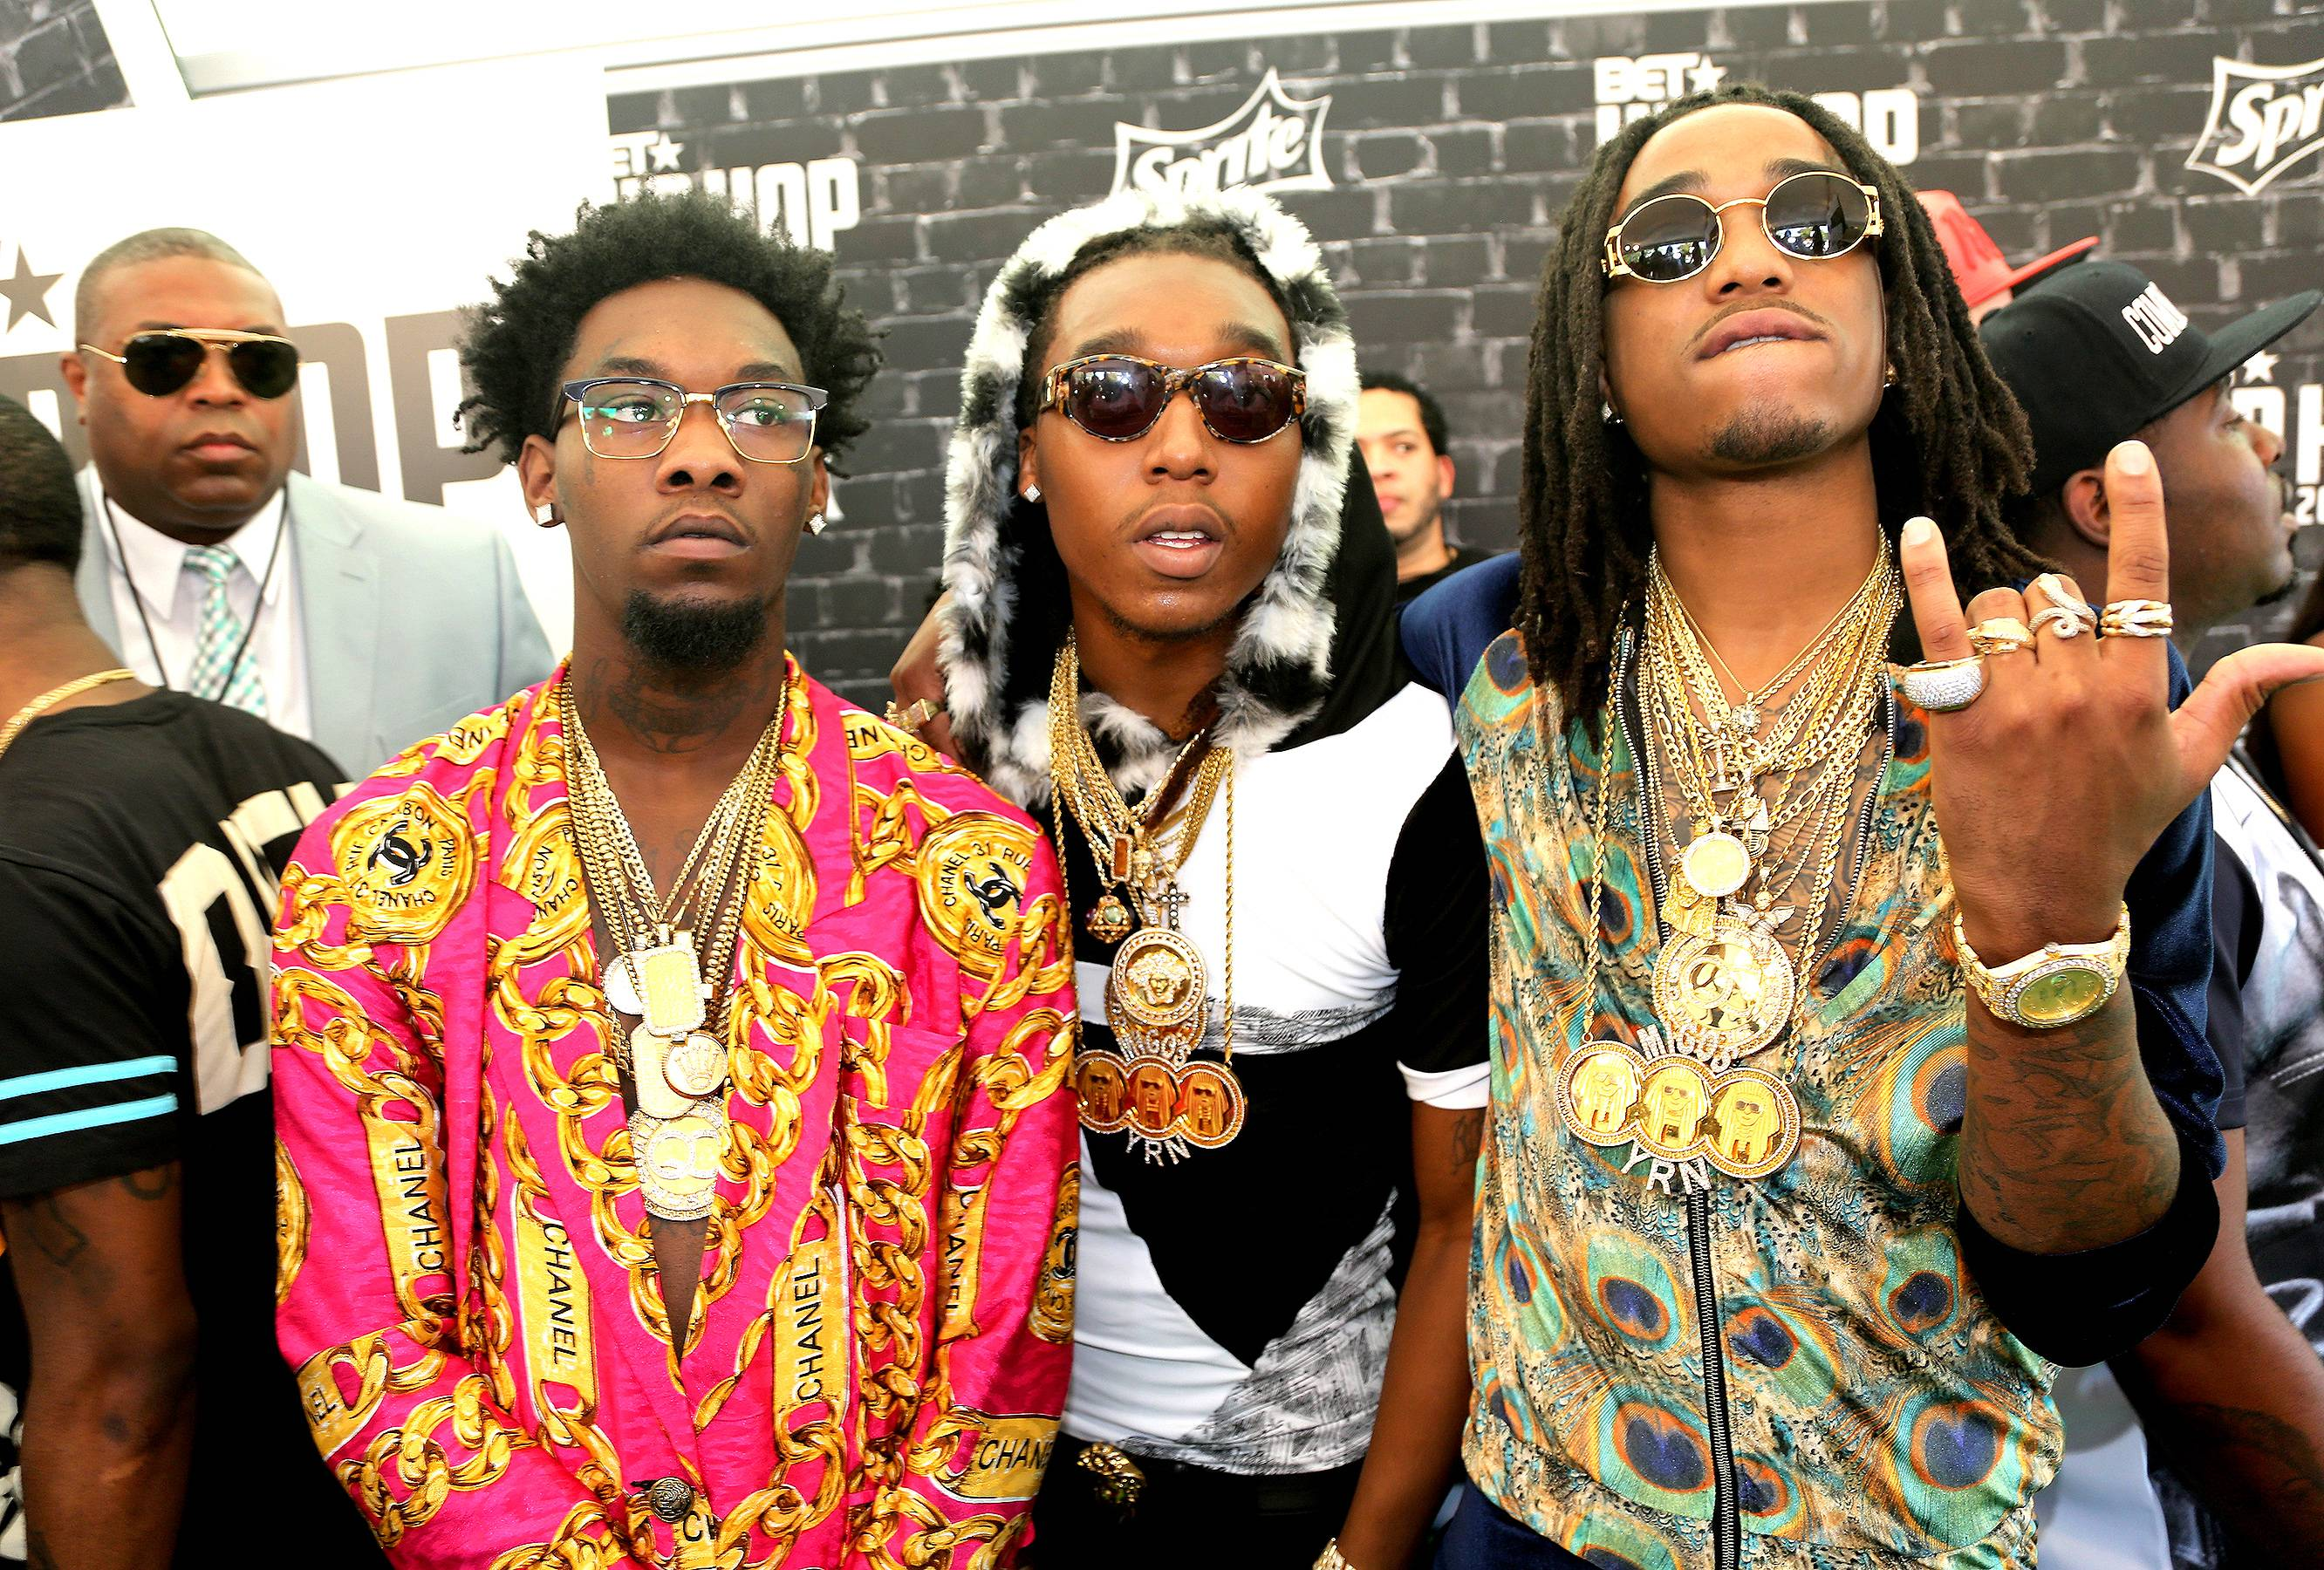 """Migos vs. 300 Entertainment - Migos hit up Twitterand announced that they had parted ways with Lyor Cohen's 300 Entertainment which is distributed through Atlantic Records. The Atlanta trio's debut album Yung Rich Nation debuted in July and it looks like they have already moved on after dropping their new mixtape, Back to the Bando,yesterday.They tweeted, """"B2TB @LiveMixtapes out now. No business with 300ent! YRN QC independent. Big announcement coming soon."""" While Offset, Quavo and Takeoff get back on their independent hustle that brought them their initial success, check out more artists who battled it out with their labels. ? Michael Harris (@IceBlueVA)(Photo: Johnny Nunez/BET/Getty Images for BET)"""